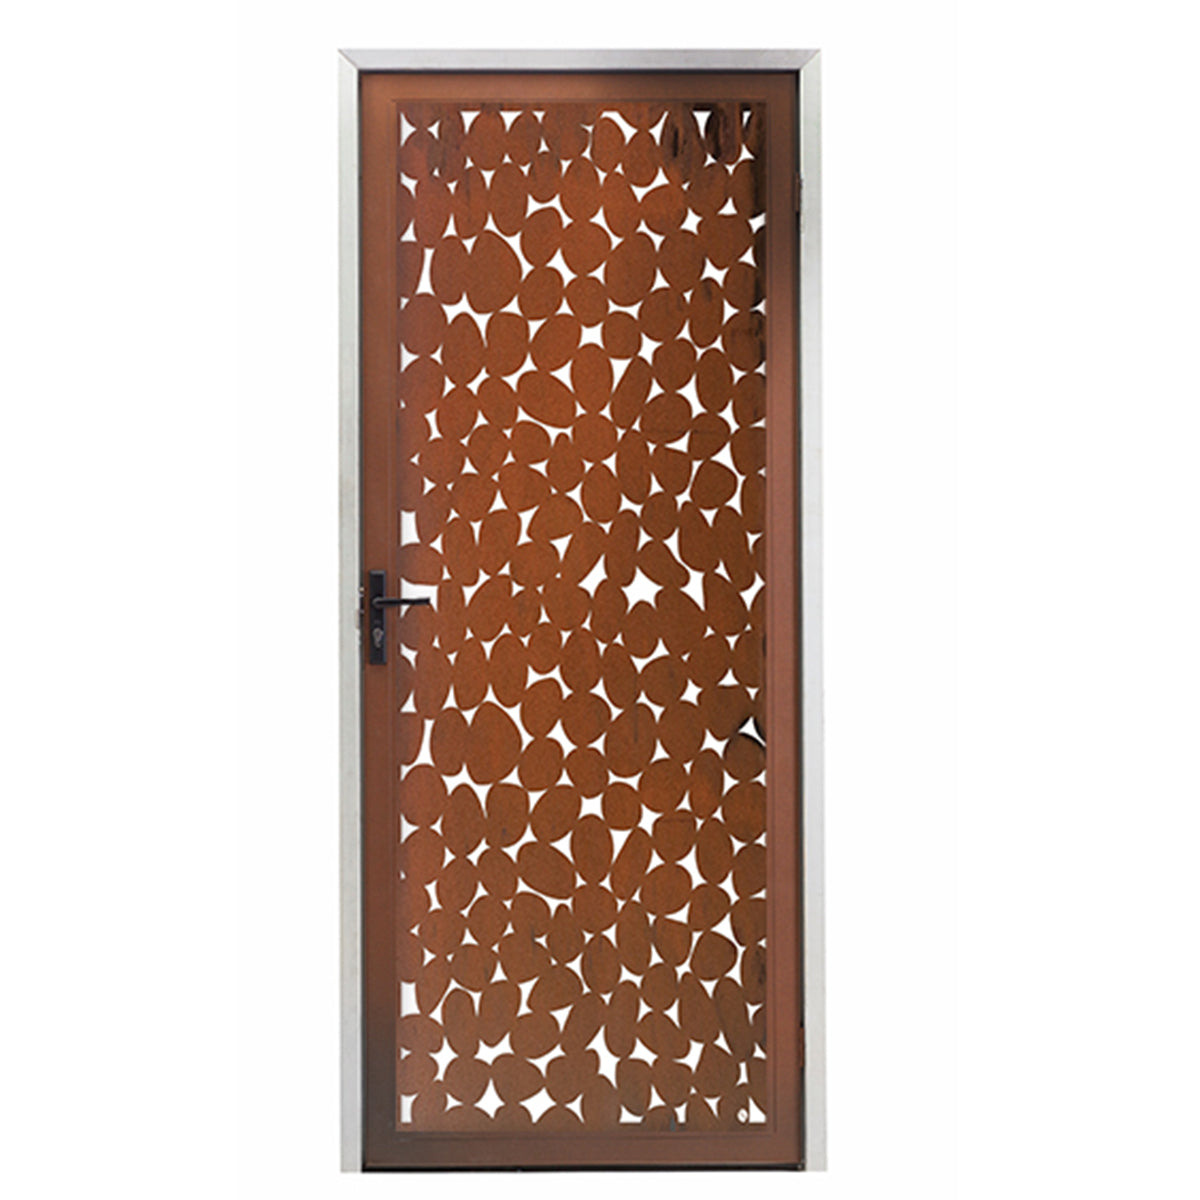 Pebbles Screen Door